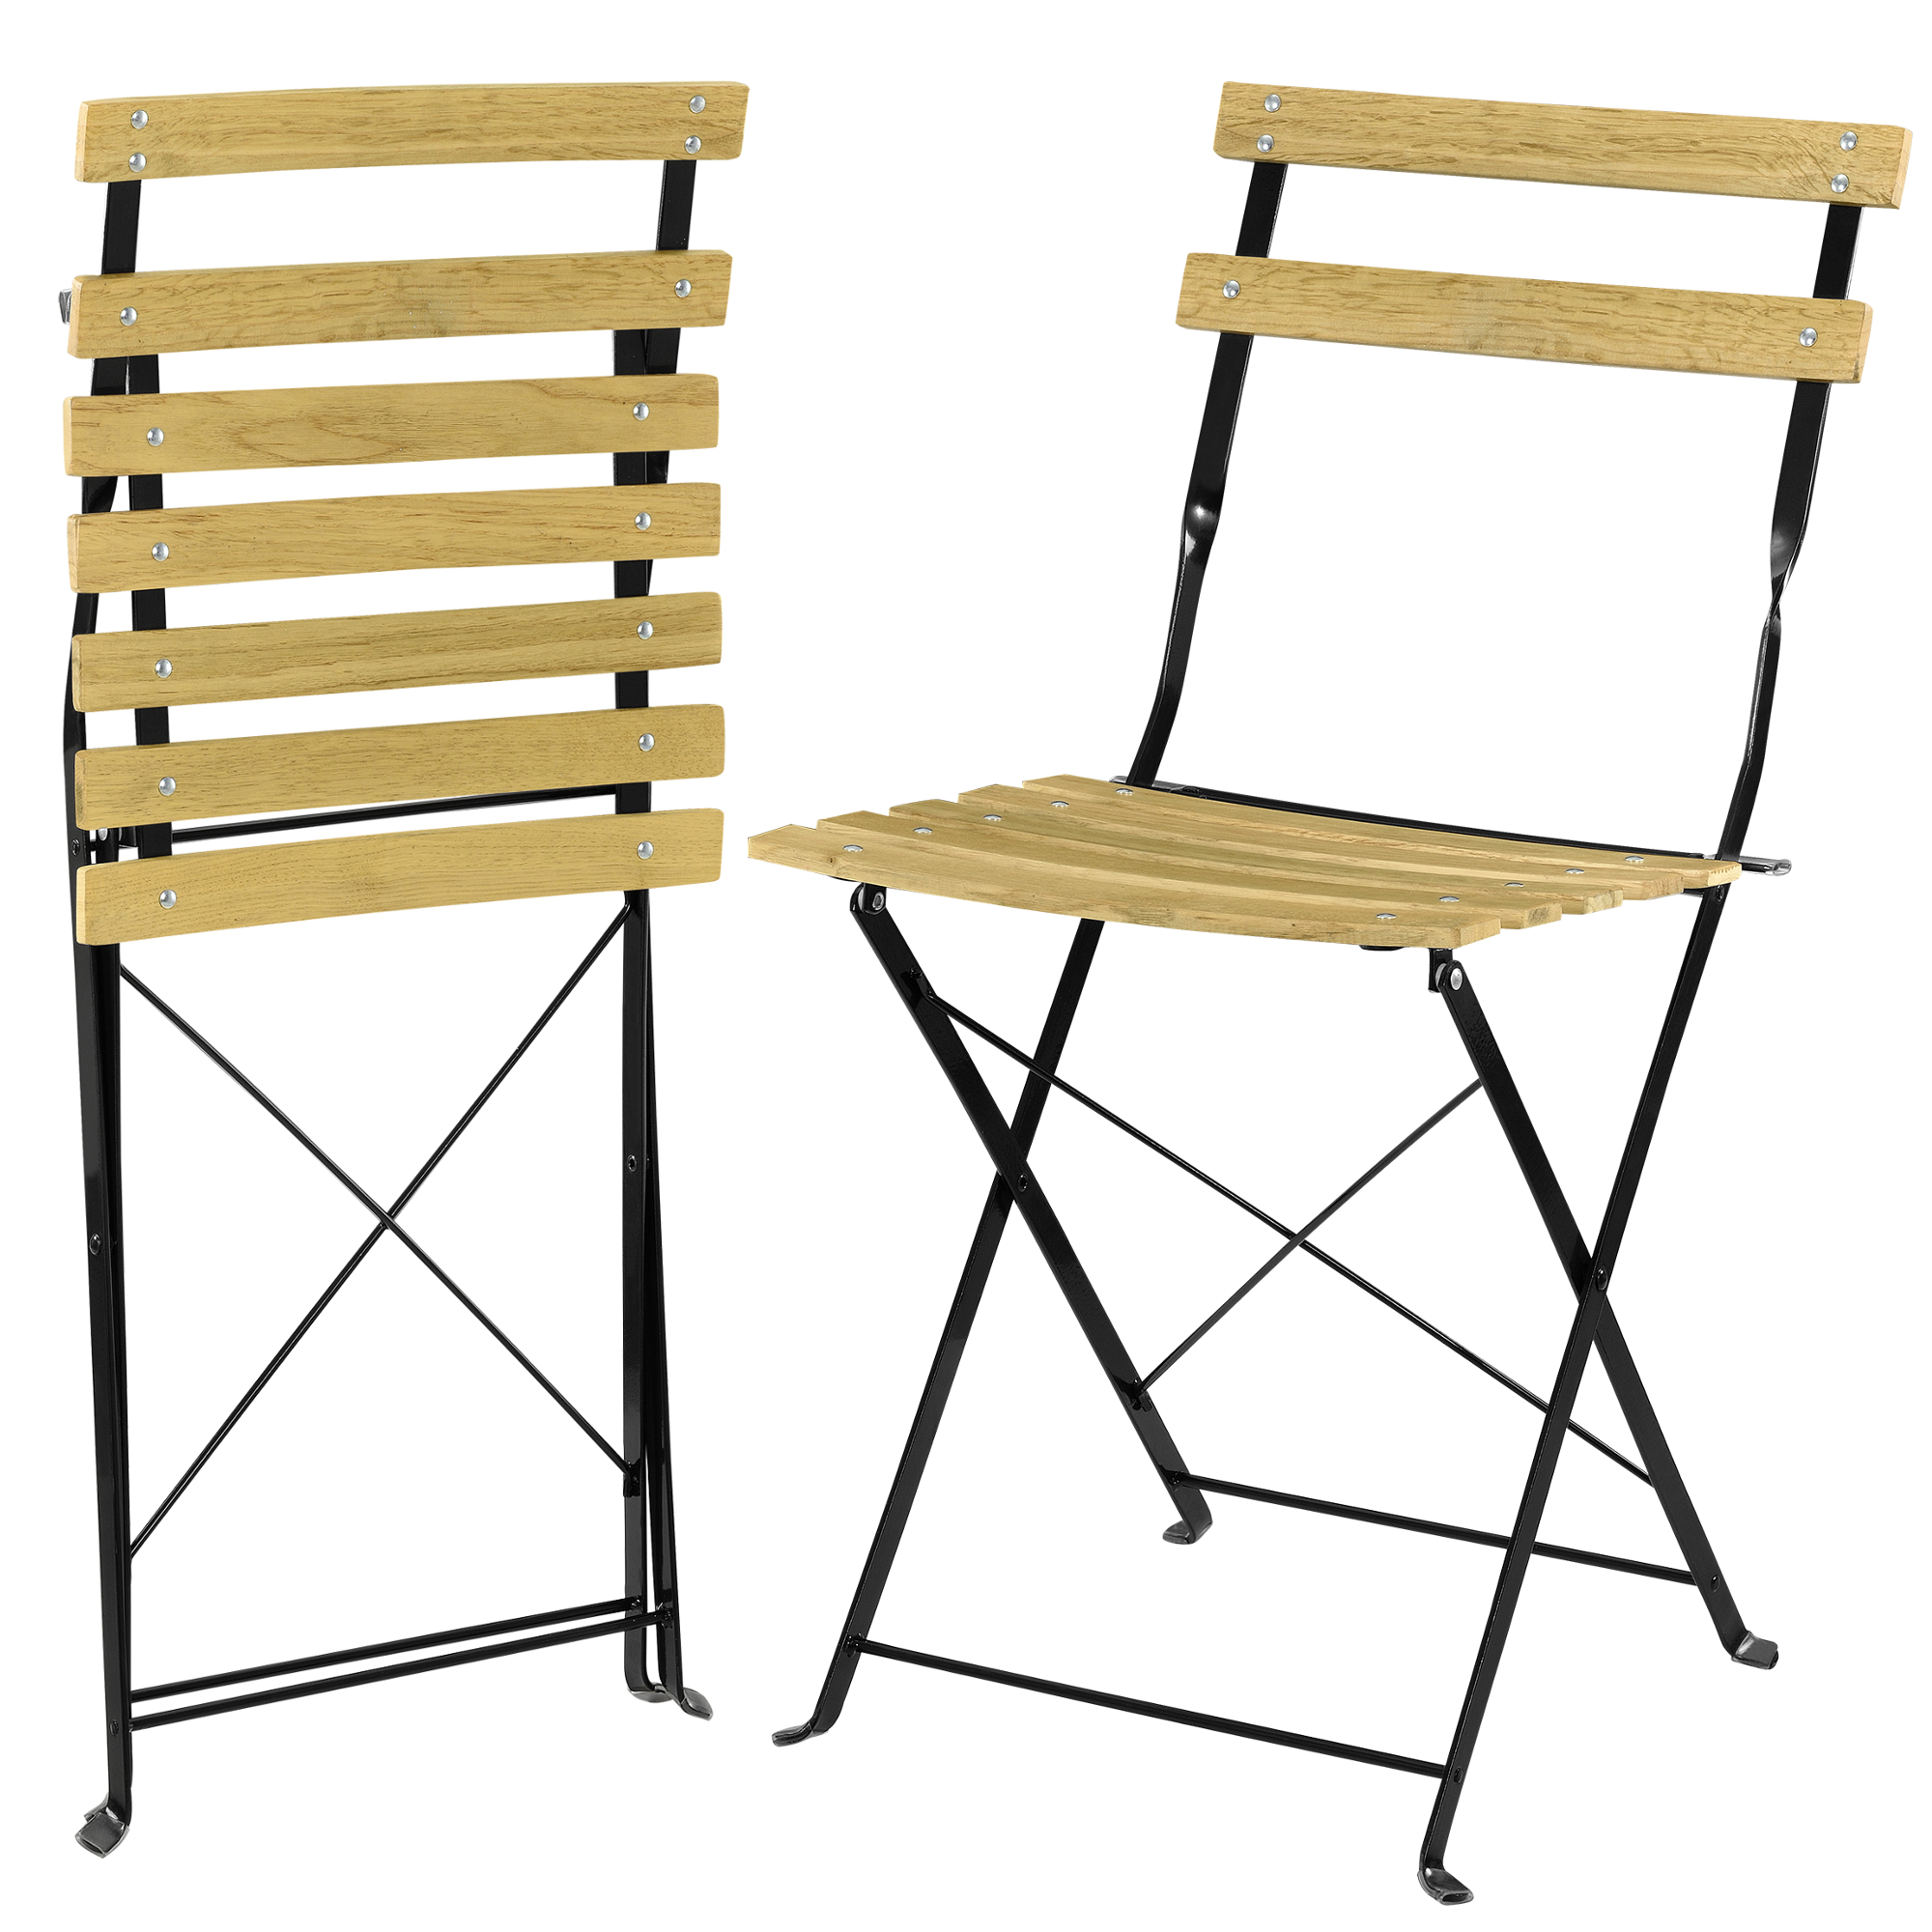 bistro set table 2 chairs dining area seating area garden furniture ebay. Black Bedroom Furniture Sets. Home Design Ideas